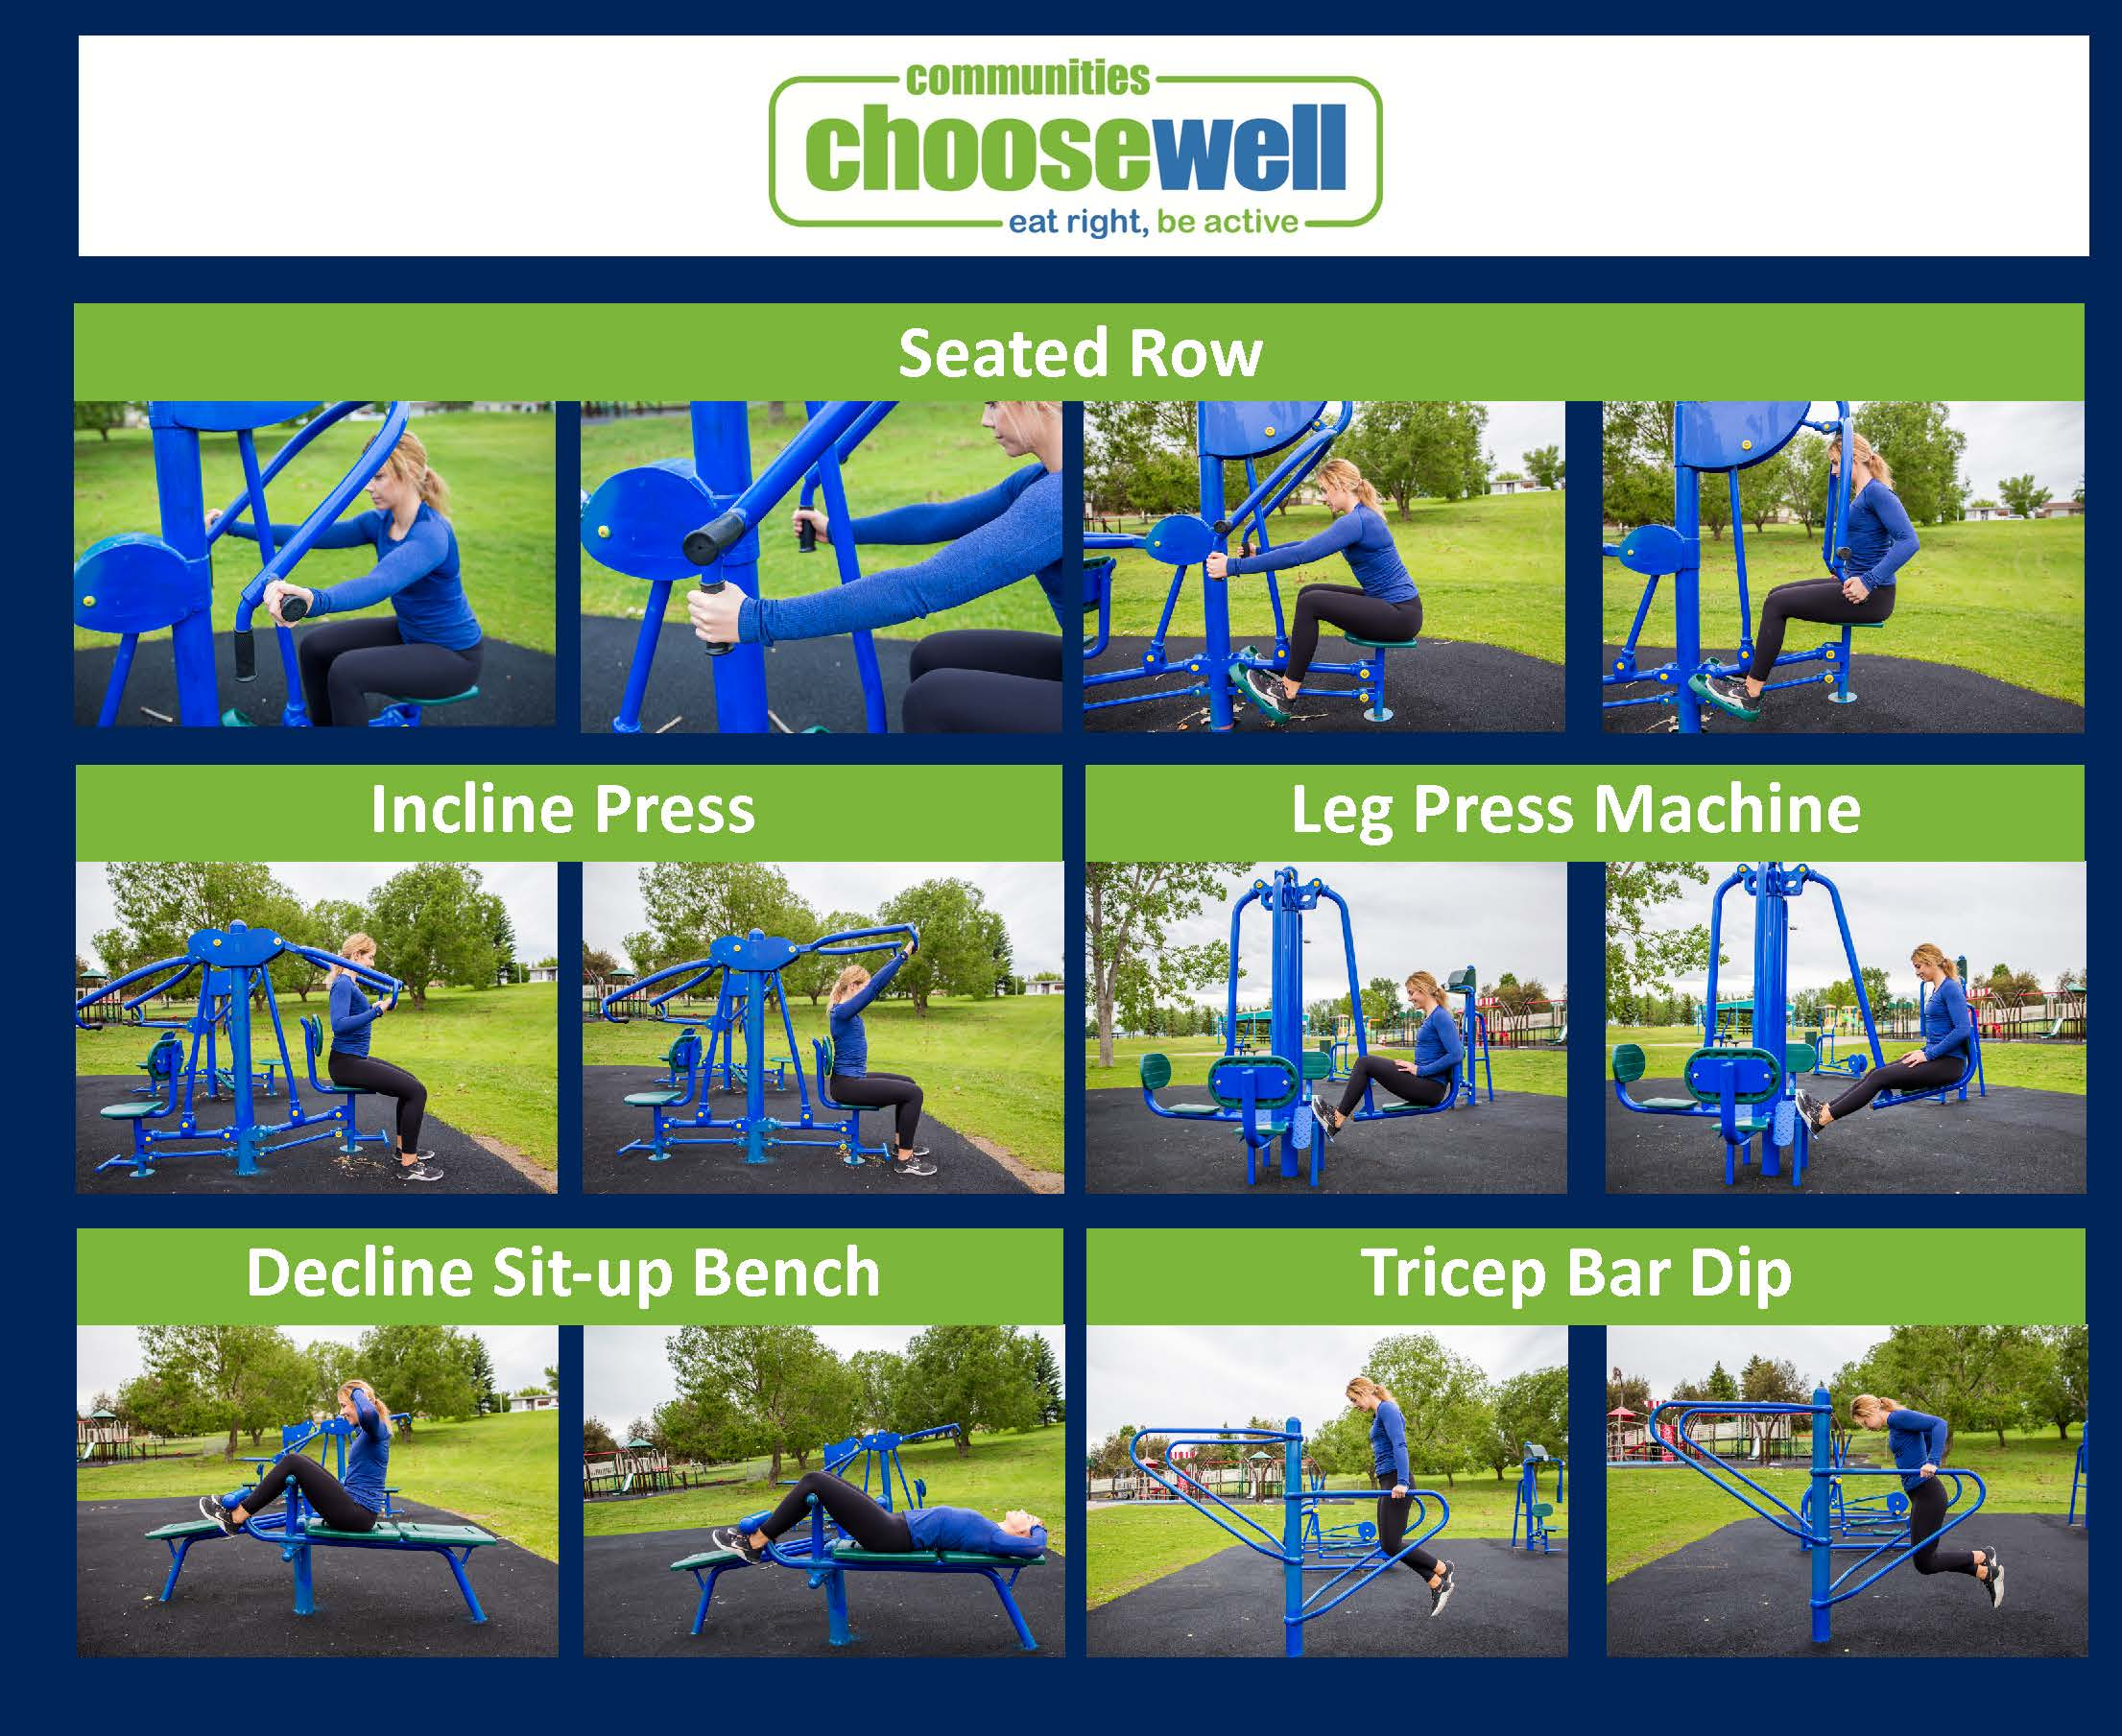 Collage showing Incline Press, Leg Press Machine, Decline Sit-up Bench, and Tricep Bar Dip equipment